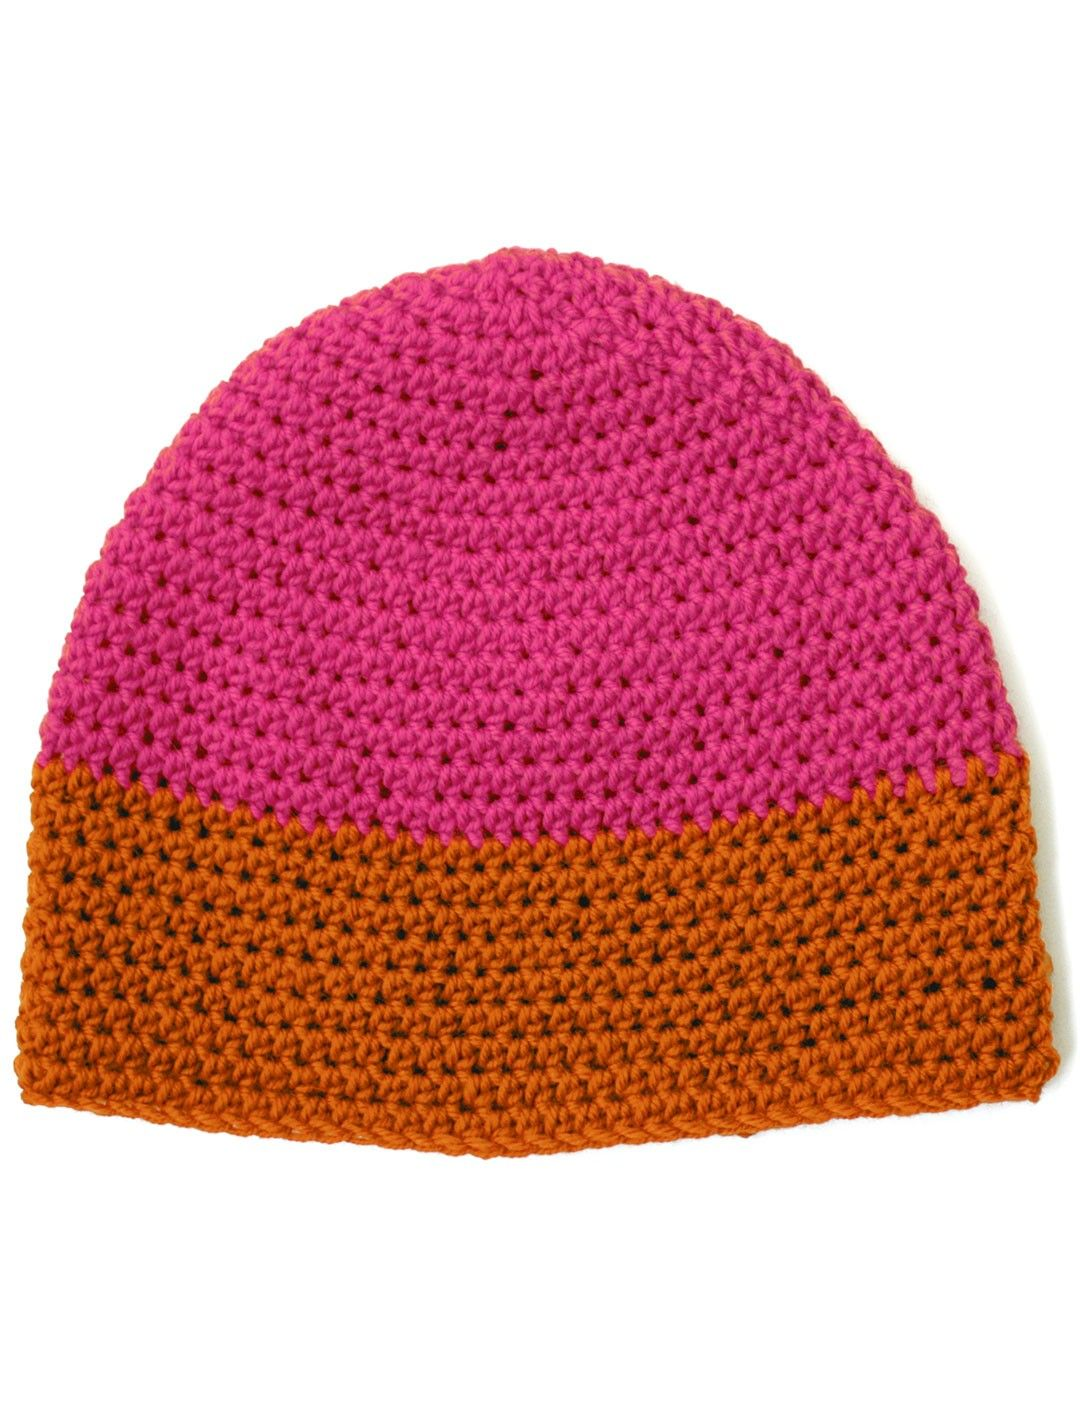 Dipped Striped #Crochet Hat   Children\'s hats and scarves ...